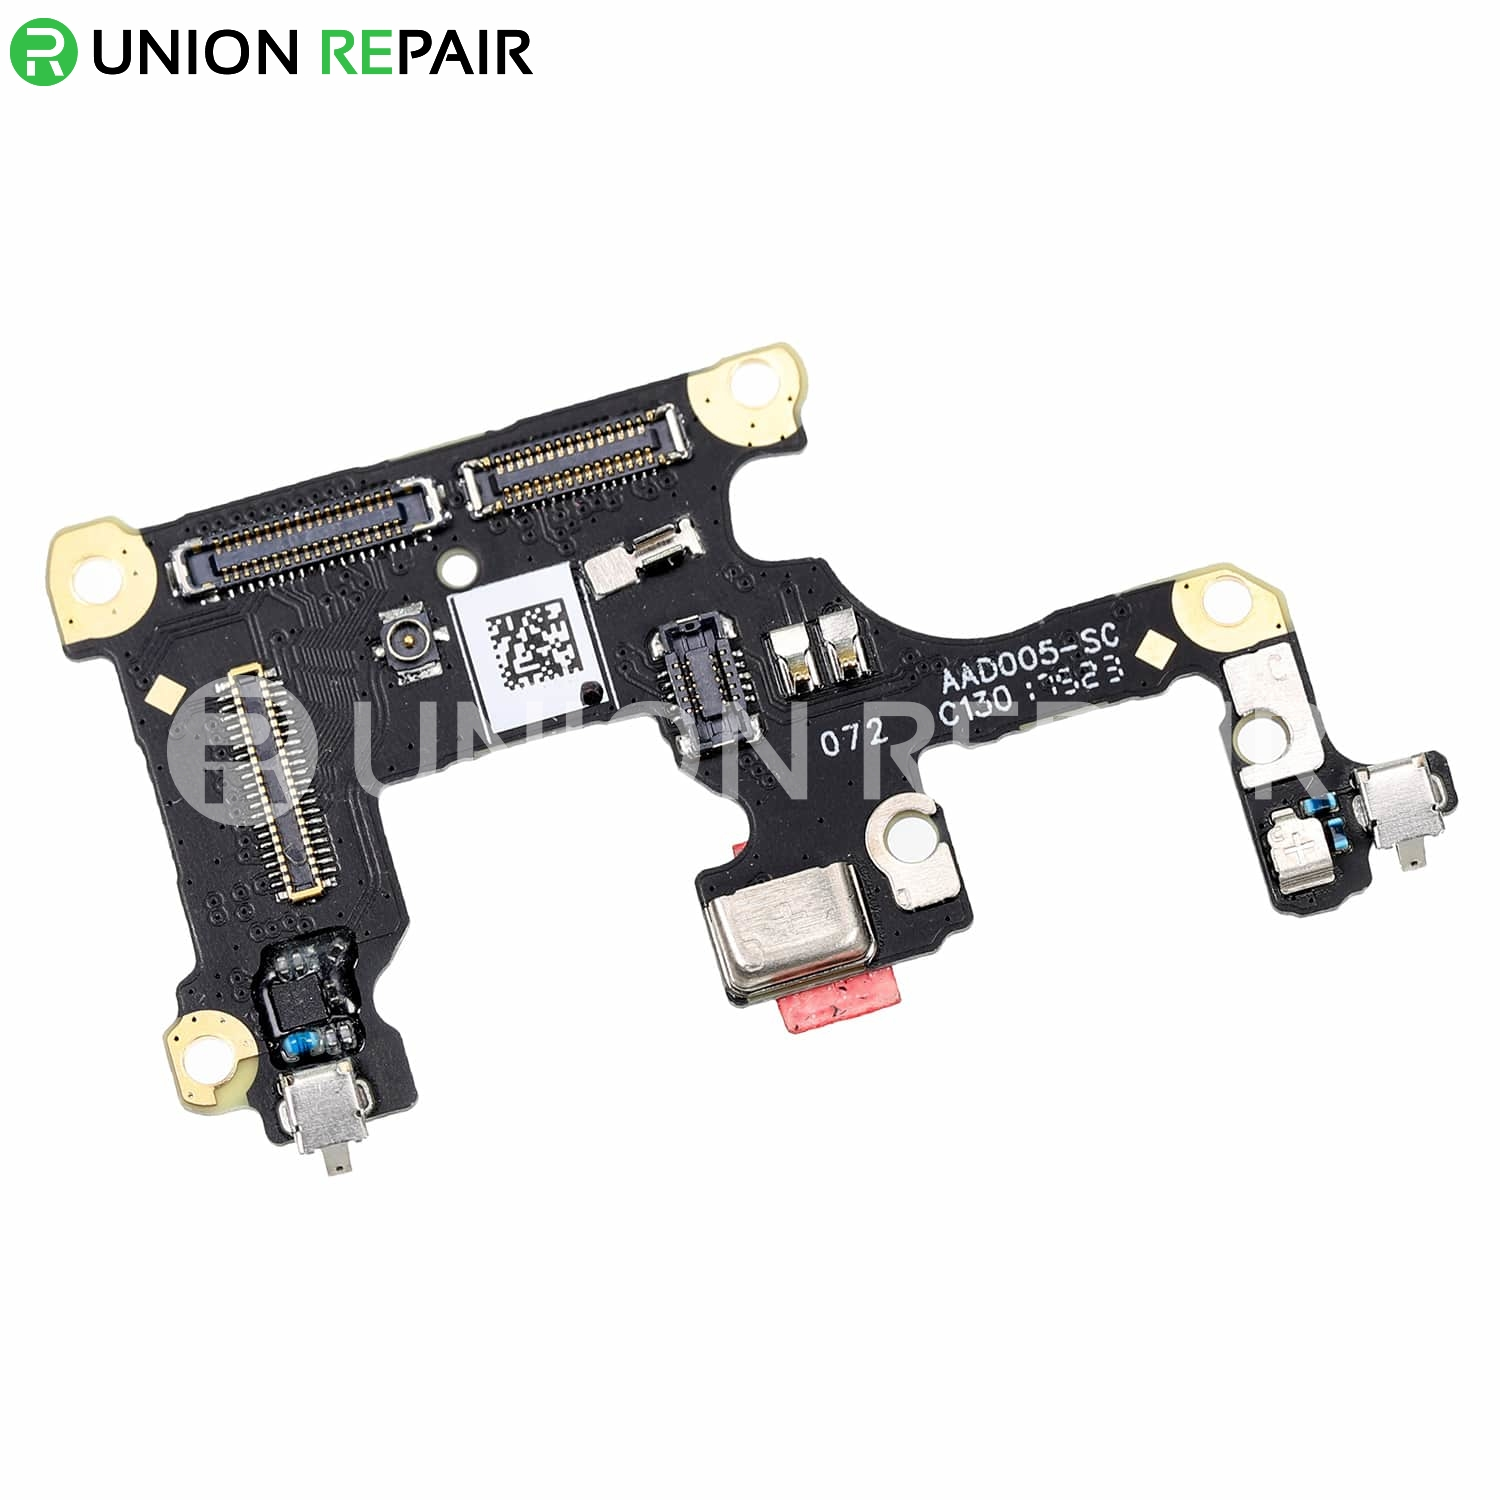 Replacement for OPPO R15 Pro Microphone Flex Board, fig. 3